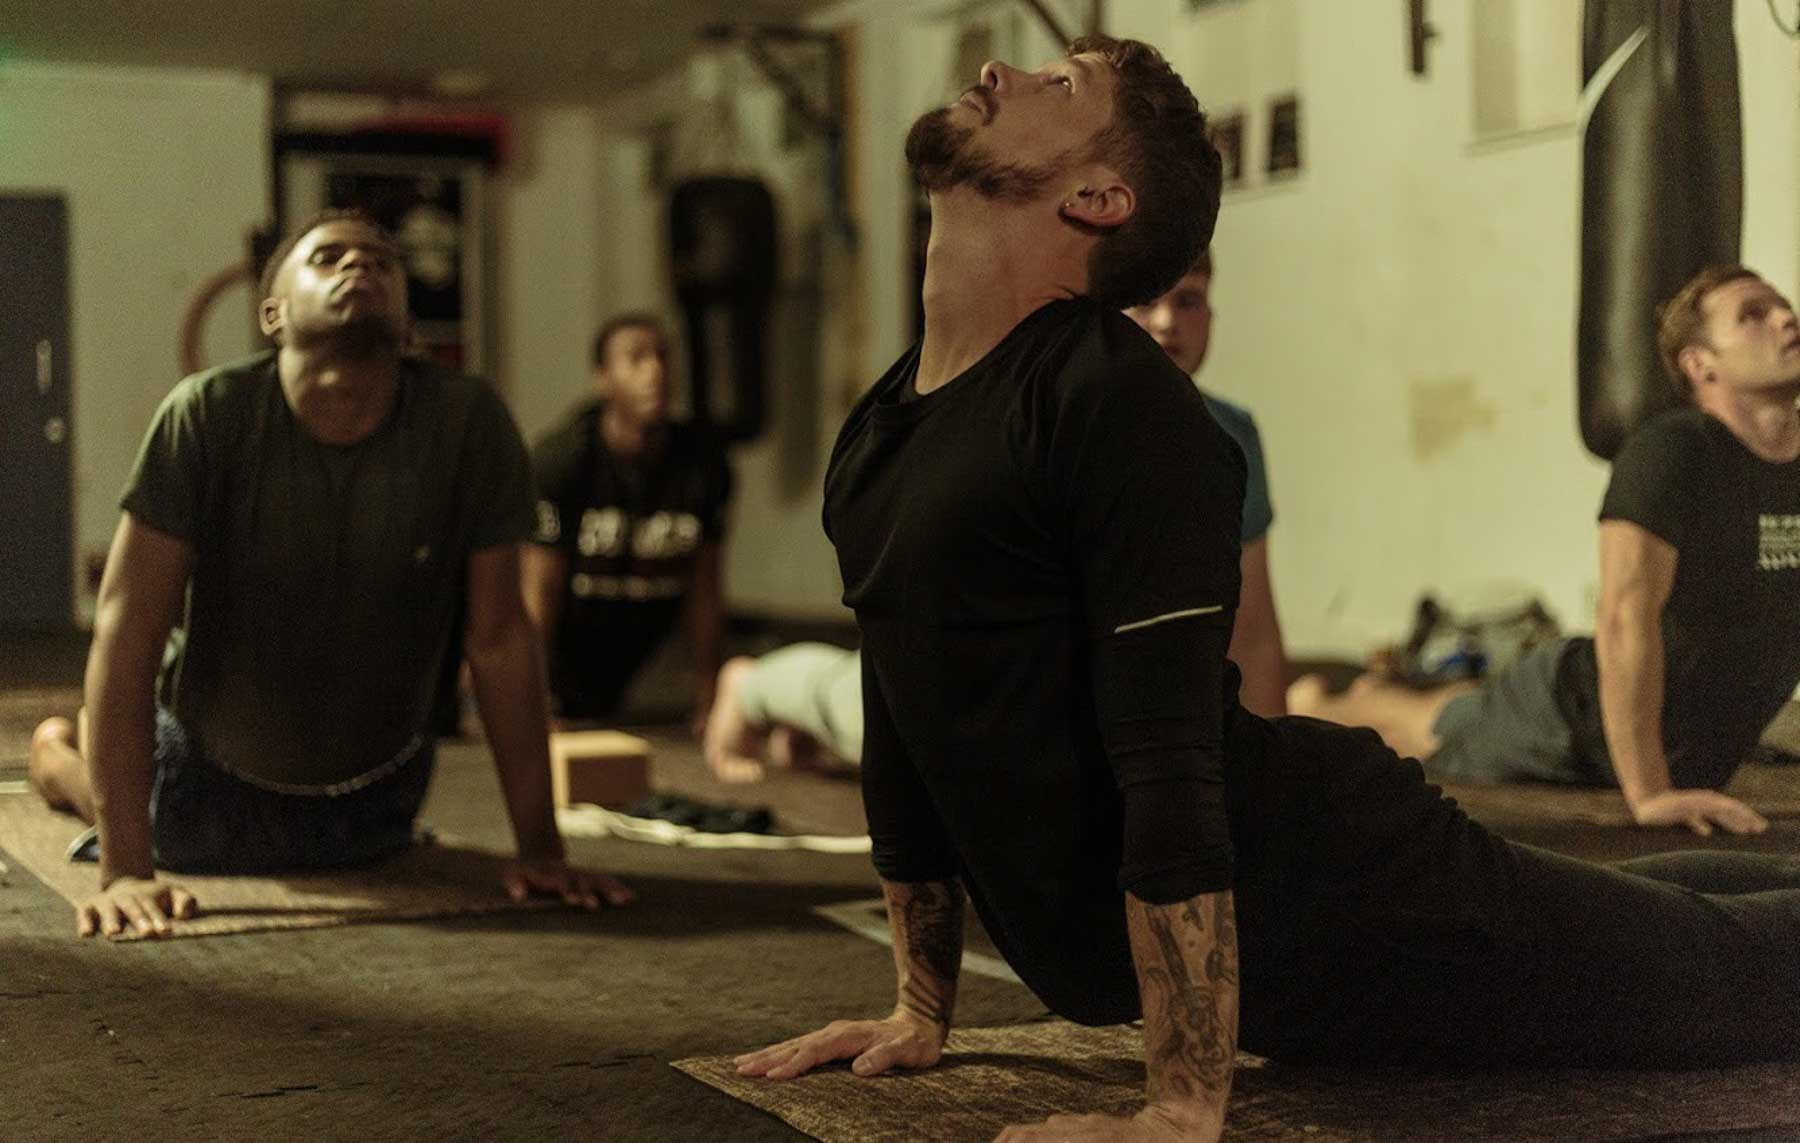 Yoga teaching showing Upward Dog pose to his students